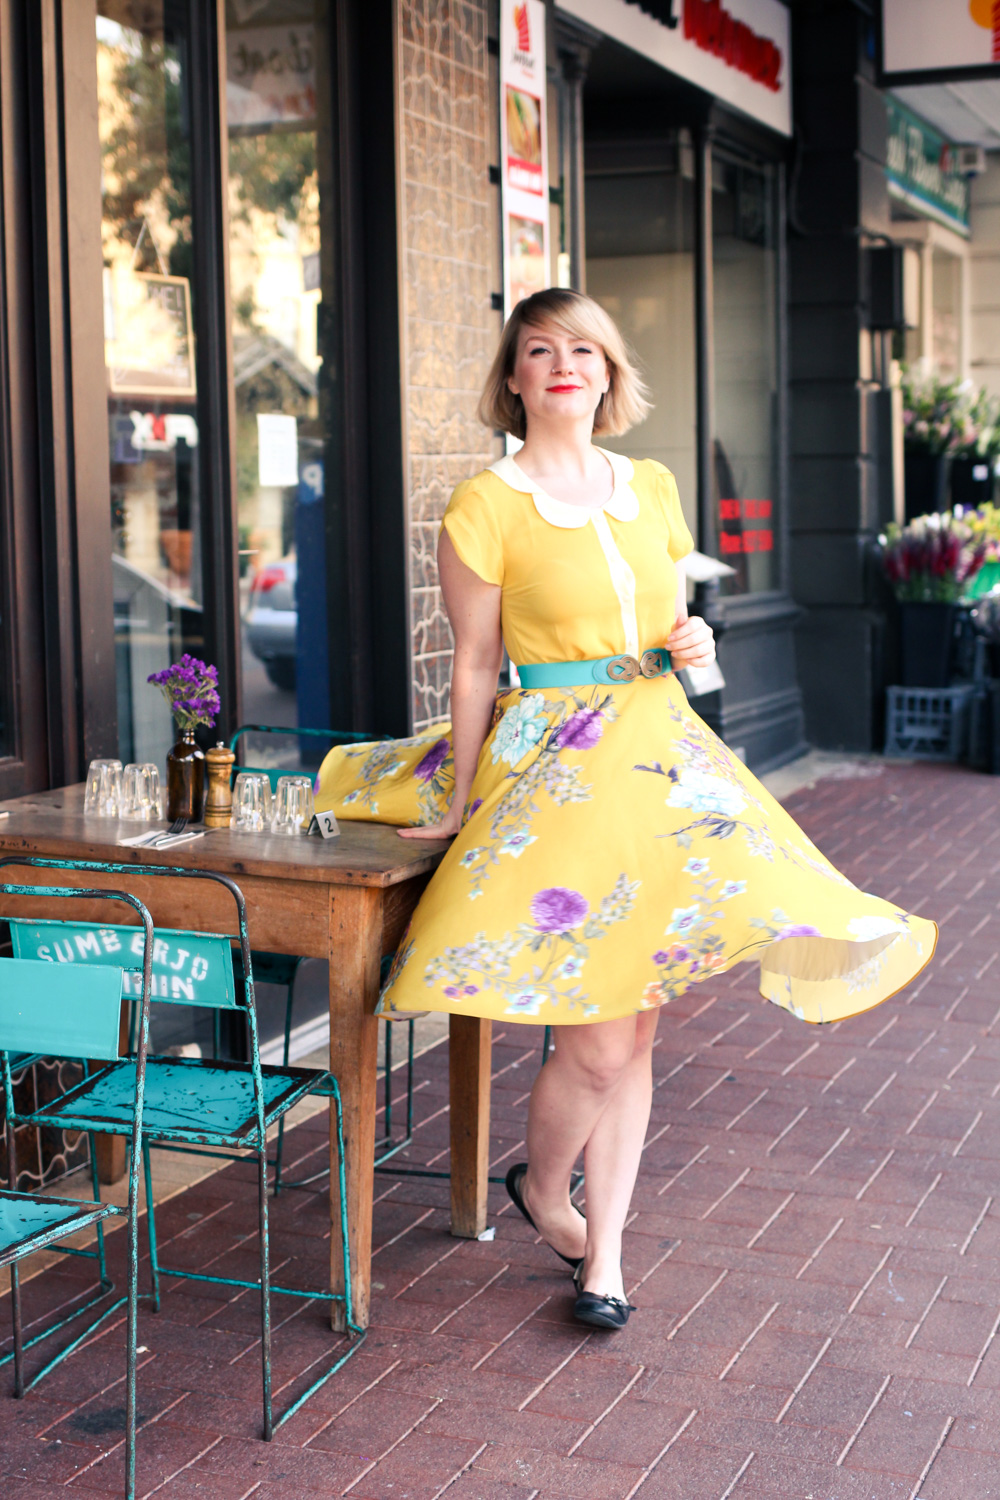 @findingfemme wears yellow Modcloth brand blouse with petal collar and Modcloth floral skirt during TPFF2015